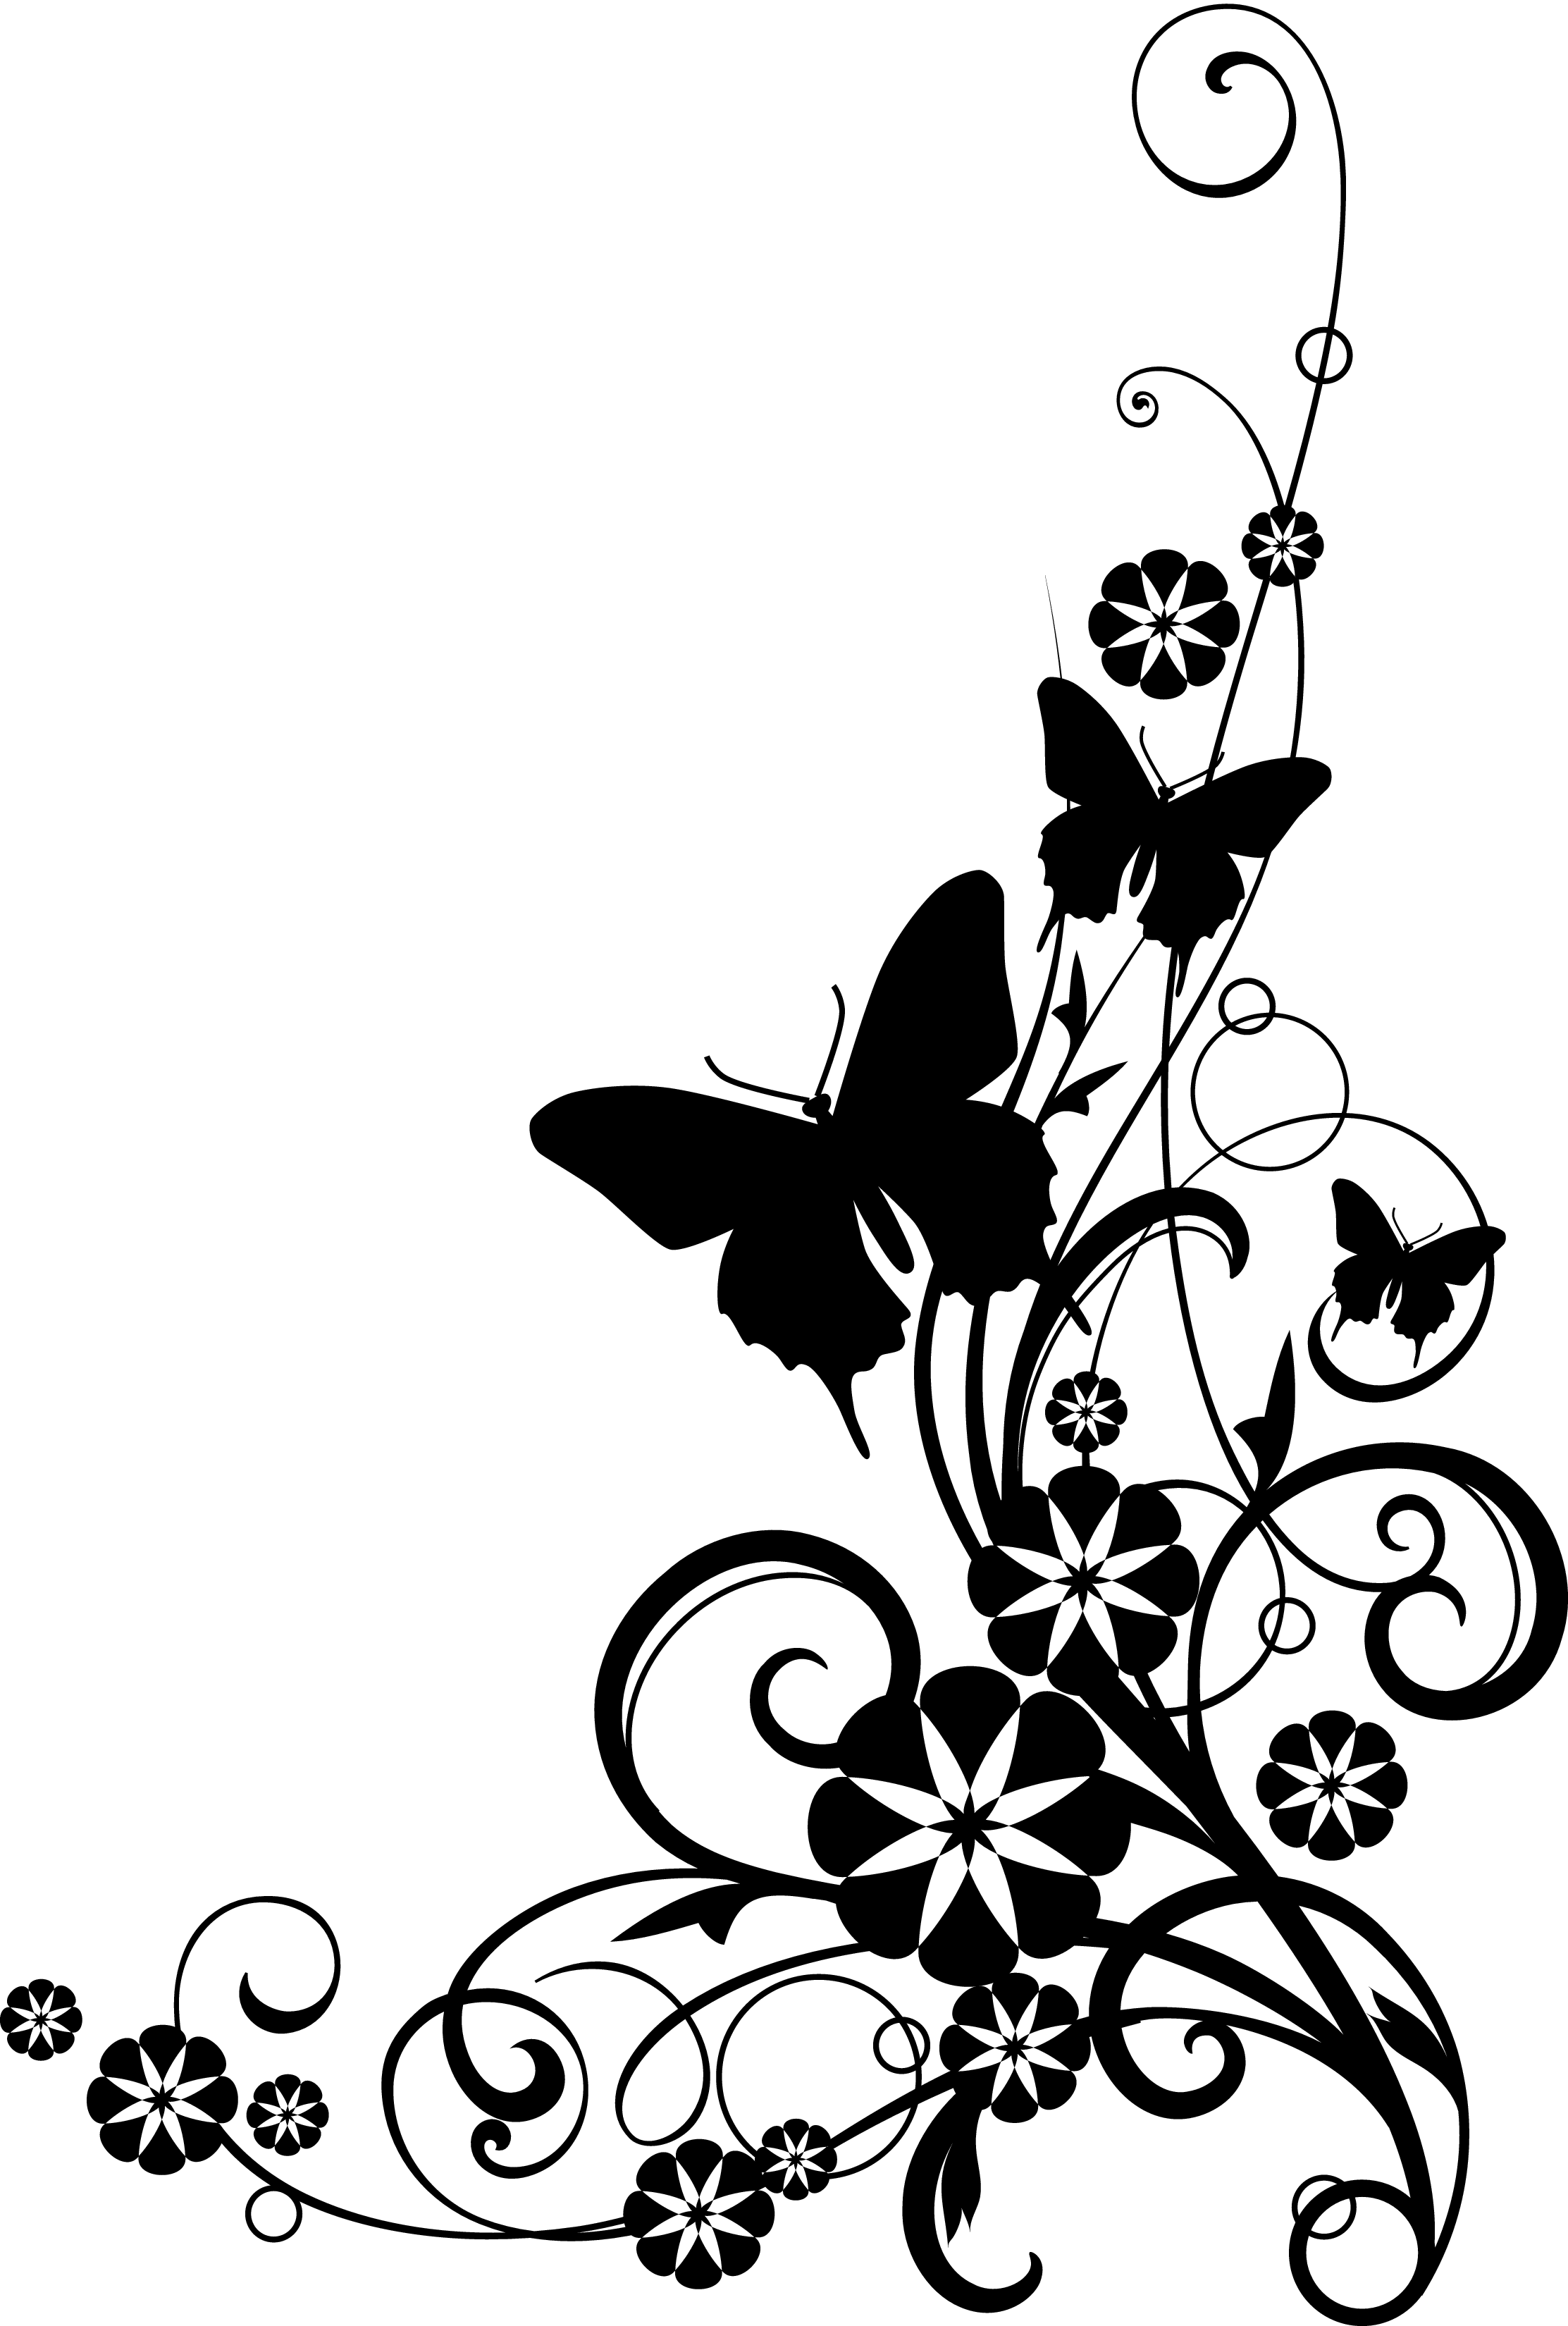 Flower clipart bw svg royalty free download Clipart garden site - ClipartFest svg royalty free download